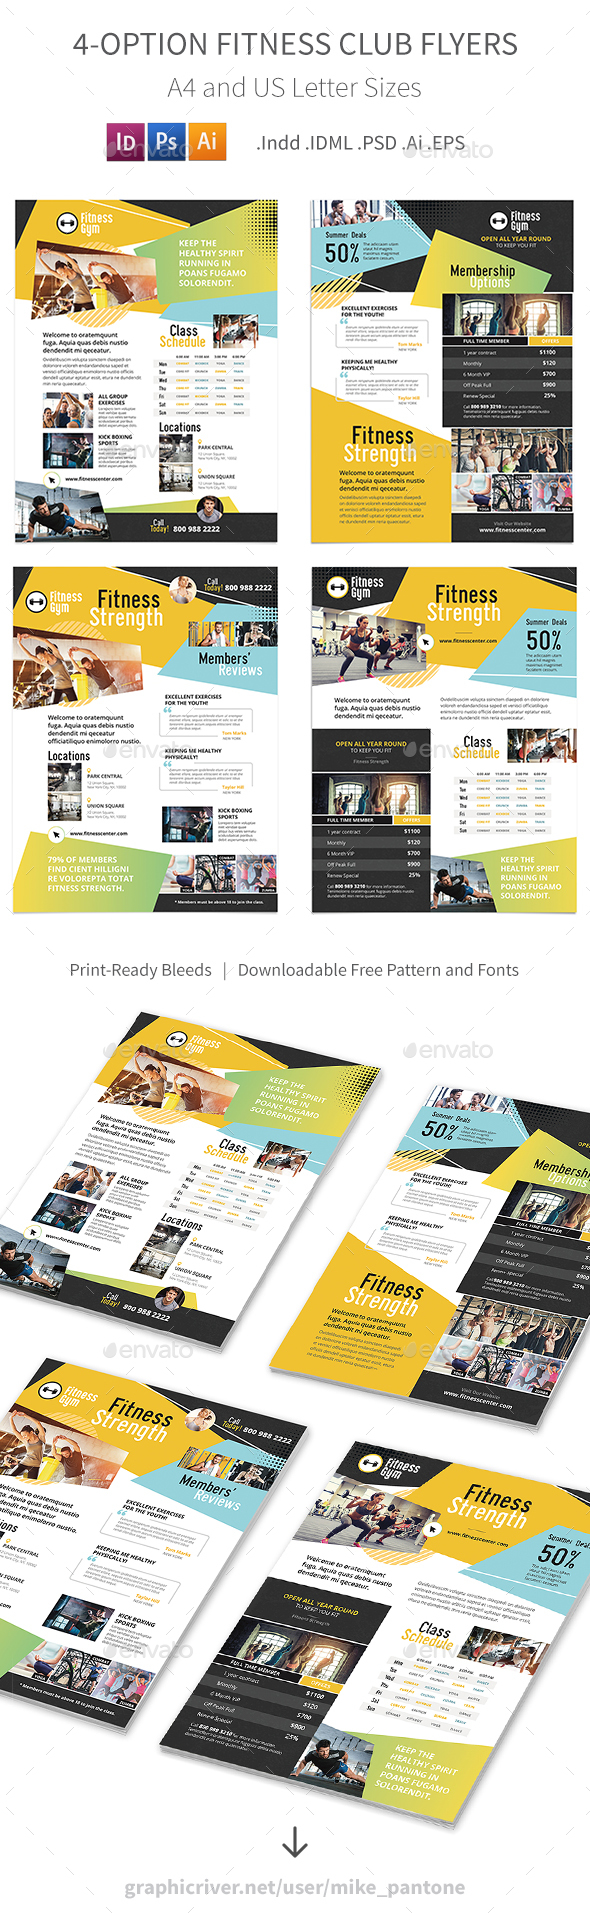 Fitness Club Flyers – 4 Options - Corporate Flyers